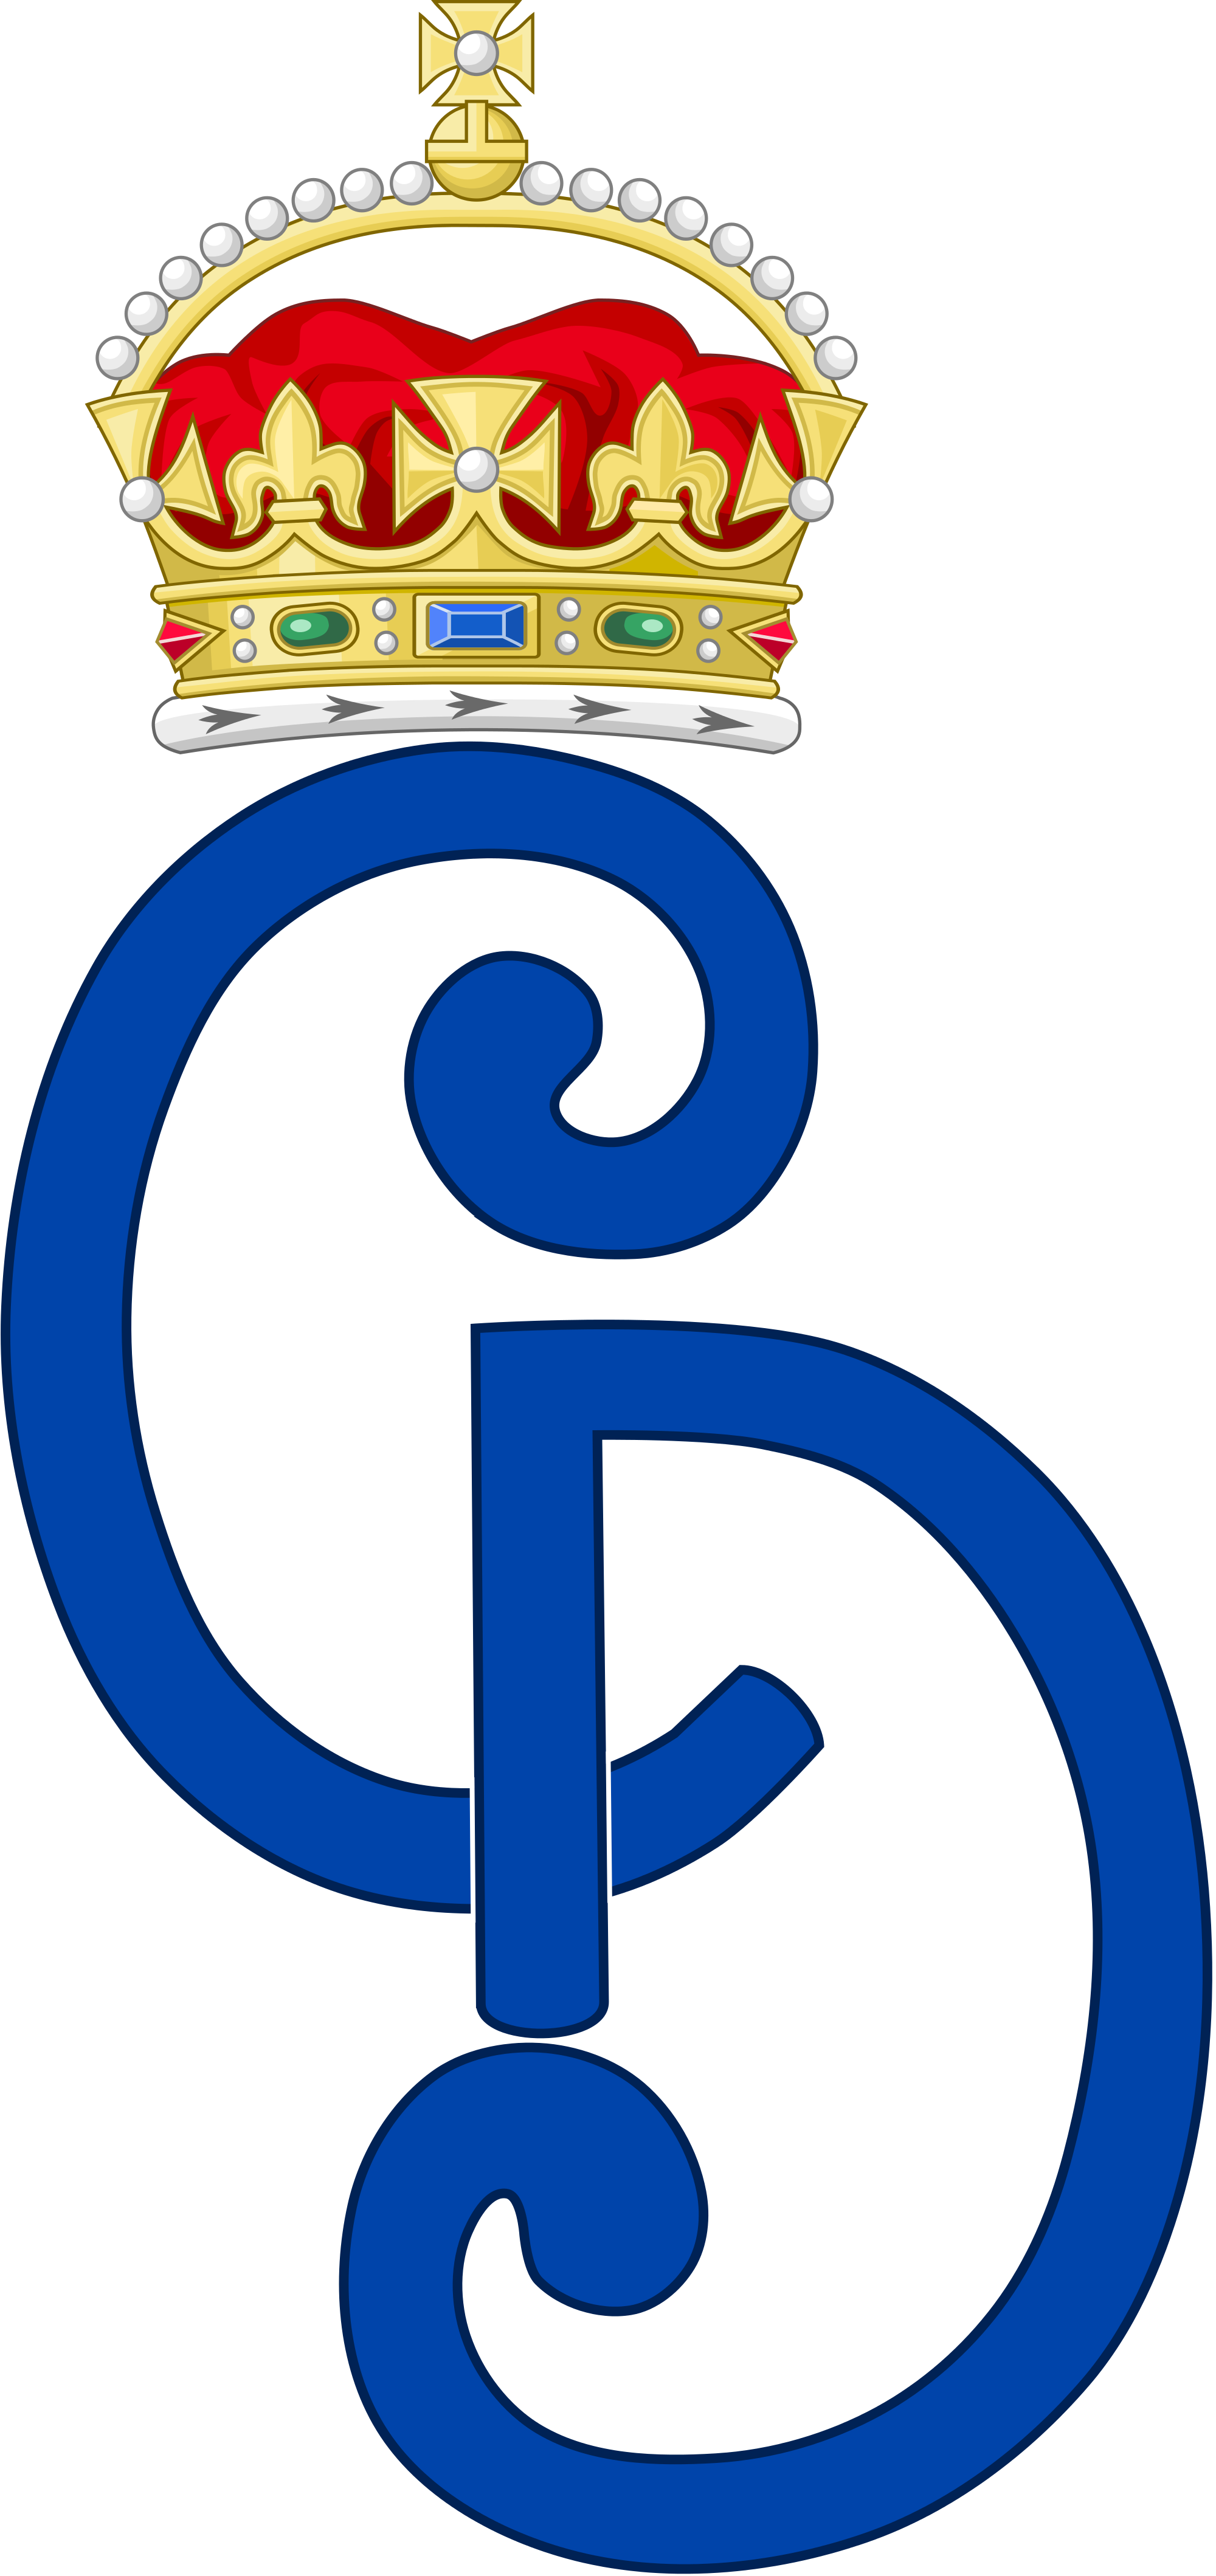 File:Dual Cypher of Prince Charles and Princess Diana of Wales.